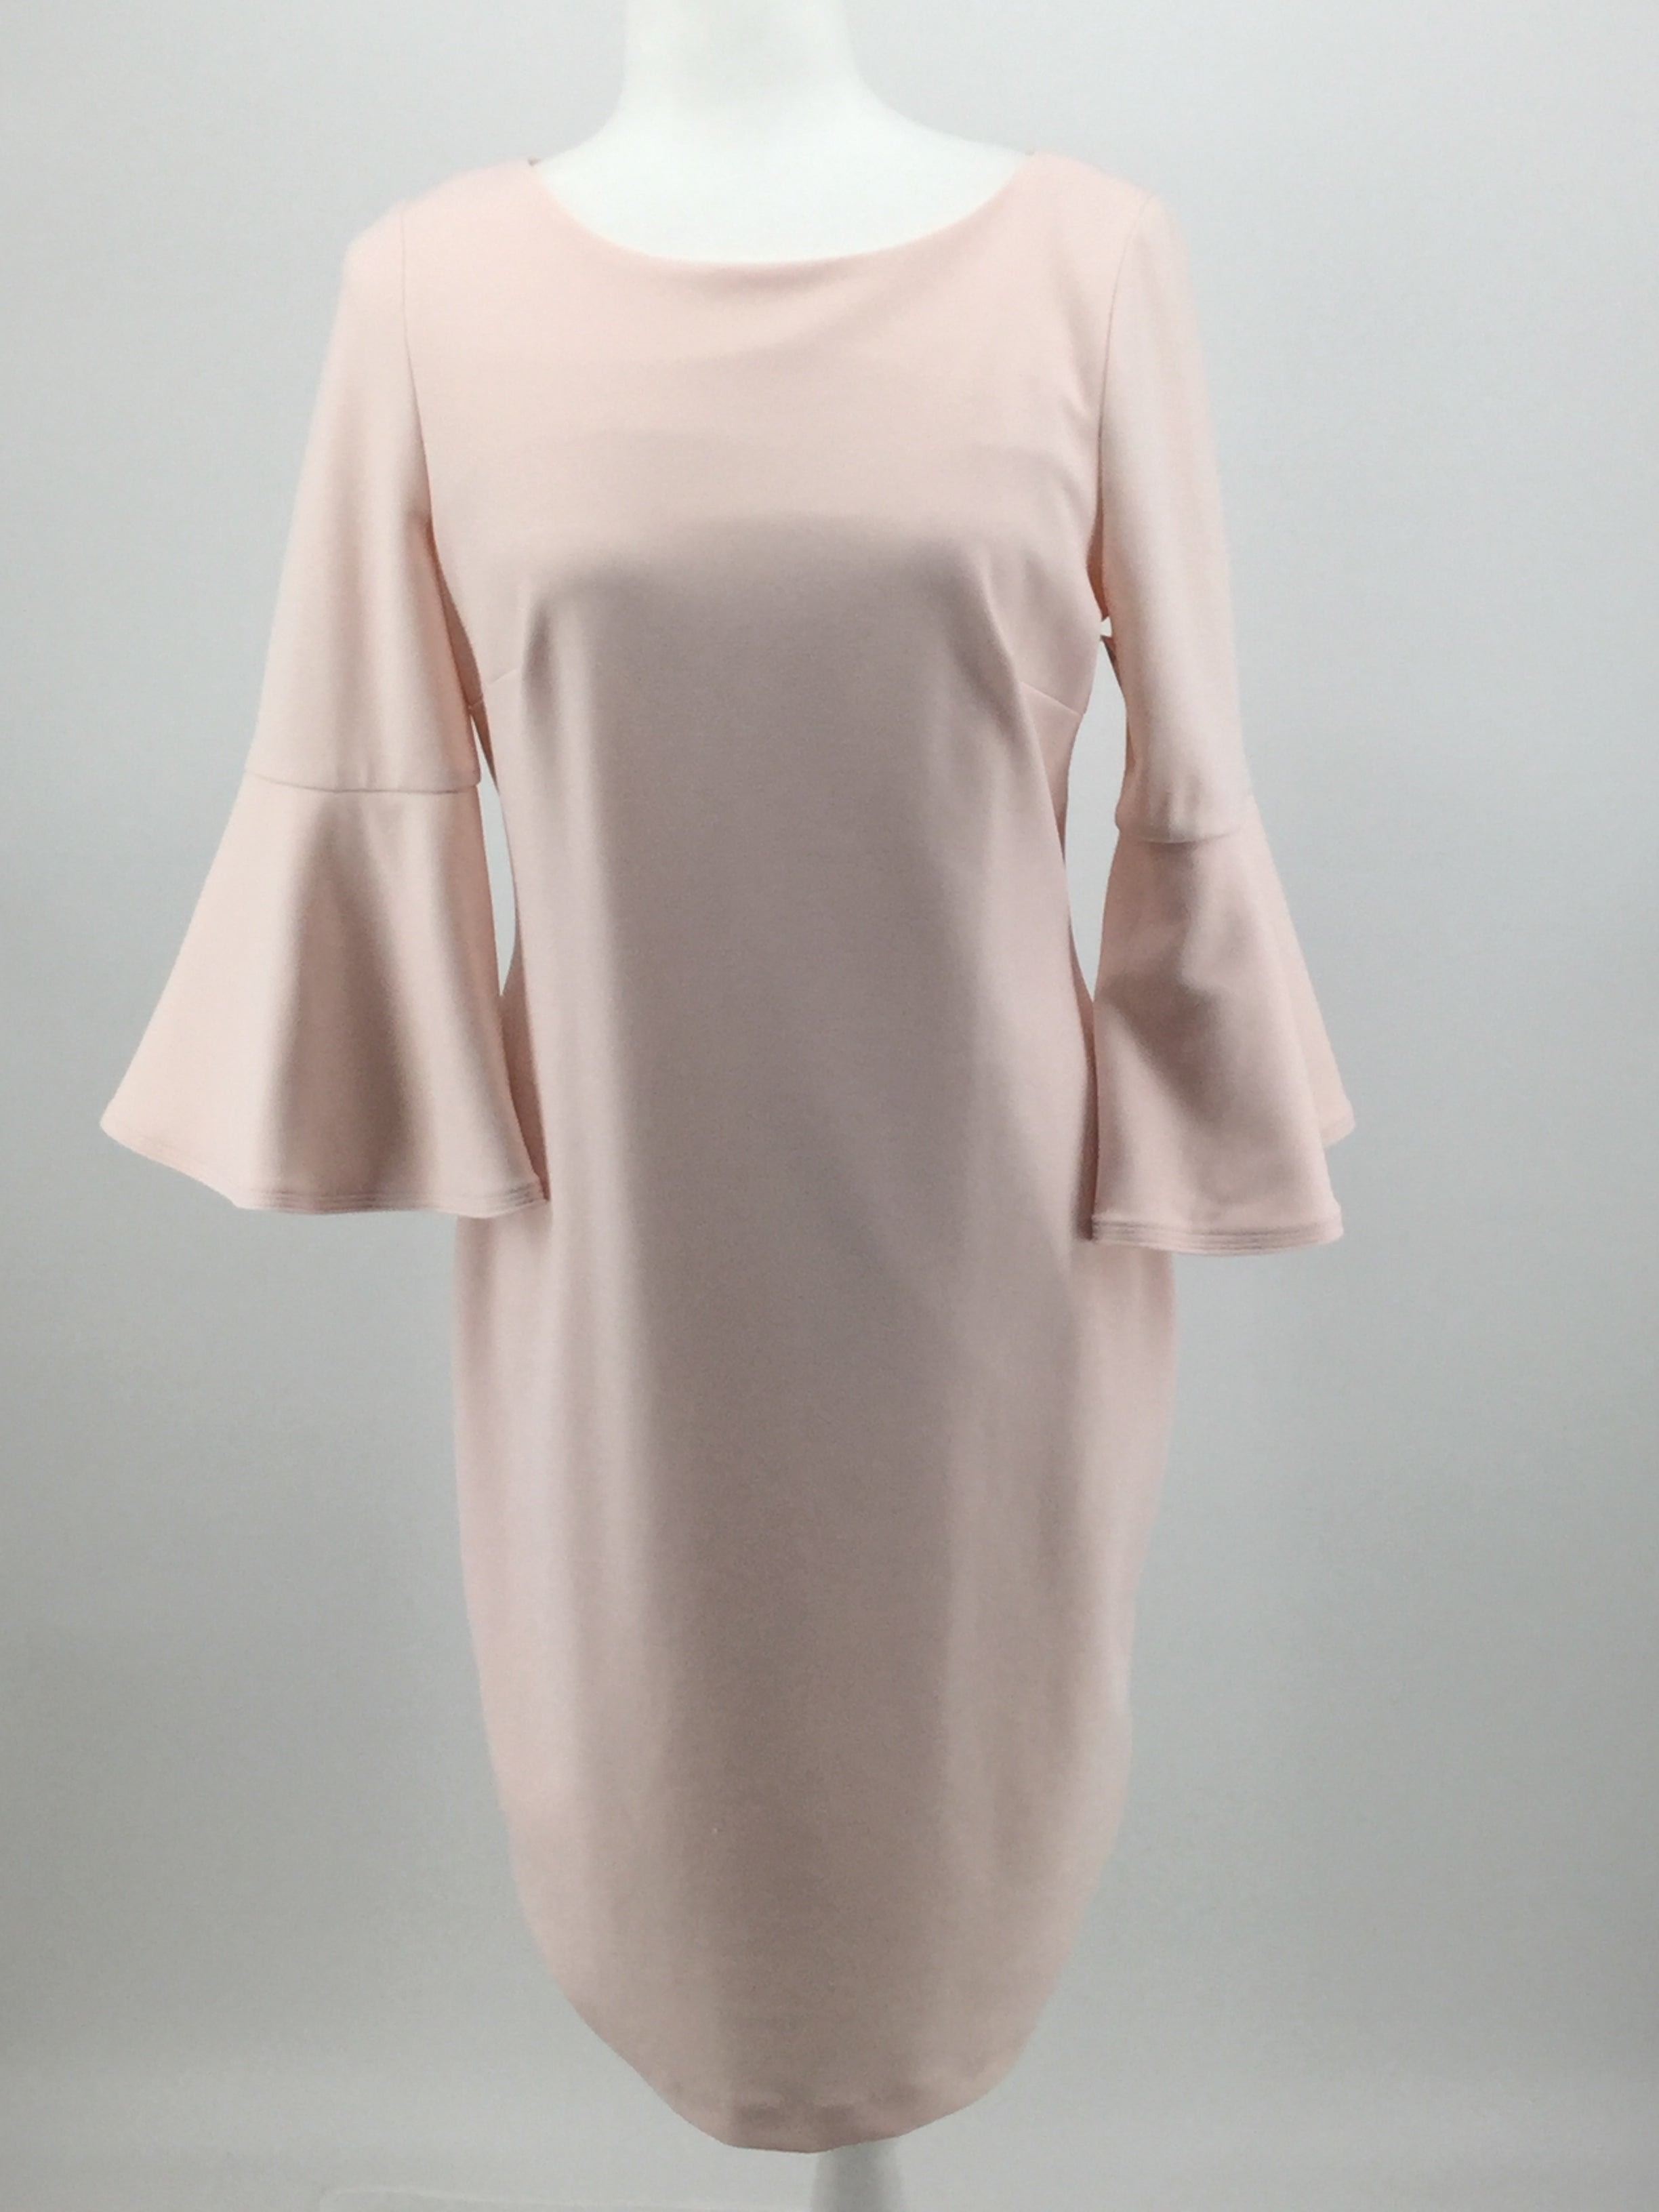 APPAREL,DRESSWEAR - BEAUTIFUL PASTEL PINK BELL SLEEVES ZIPS UP THE BACK KNEE LENGTH  VERY CLASSY.